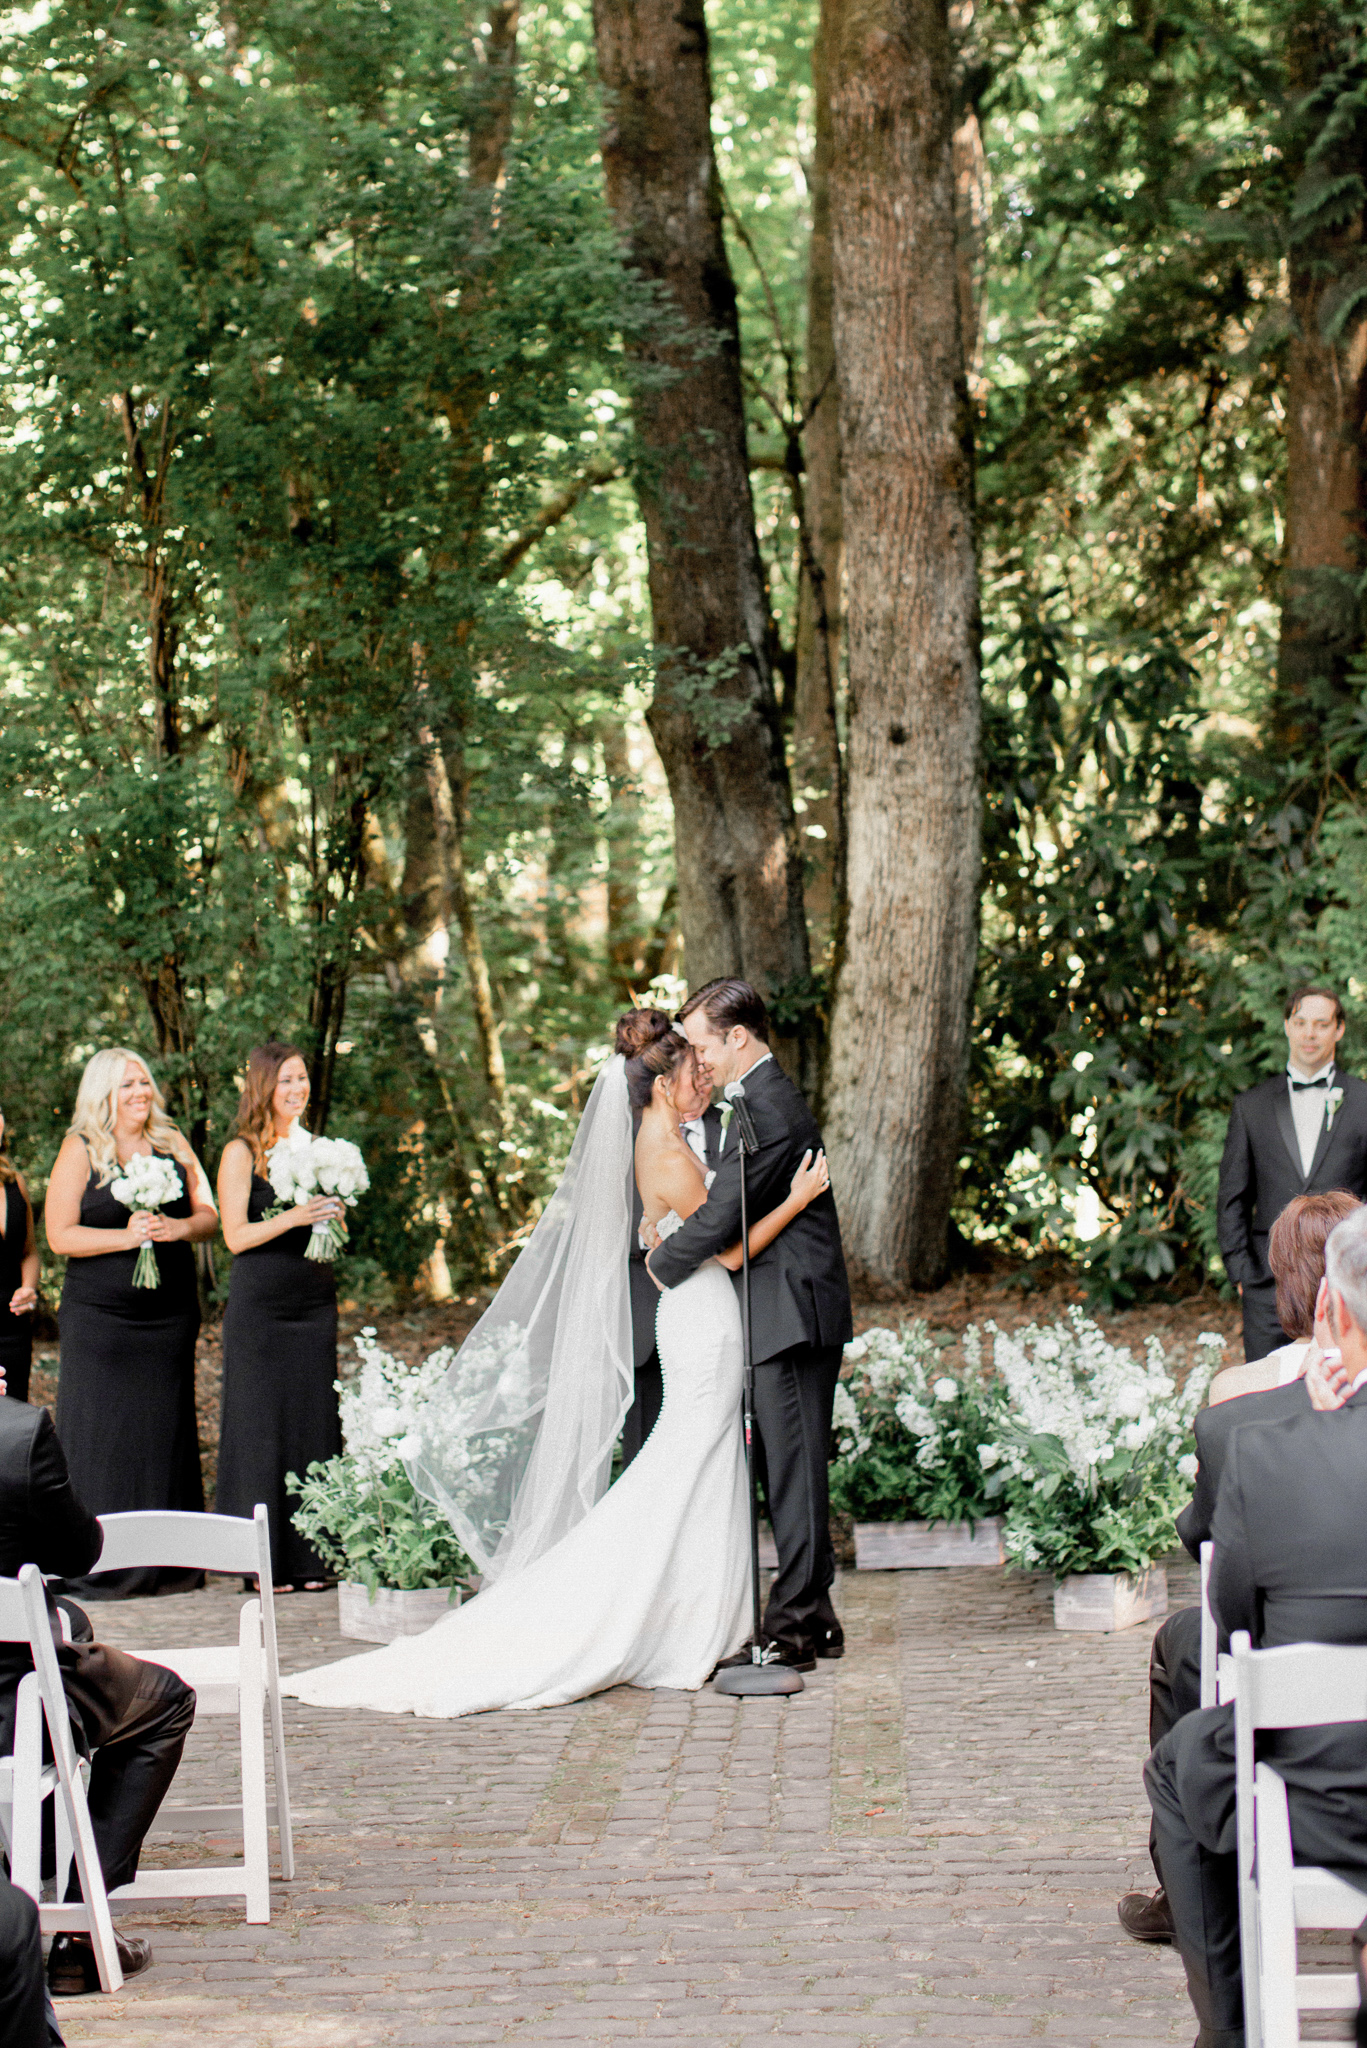 143OutliveCreative_Travel_Photographer_Videographer_Lewis&Clark_Oregon_Elegant_BlackTie_Destination_Wedding.jpg